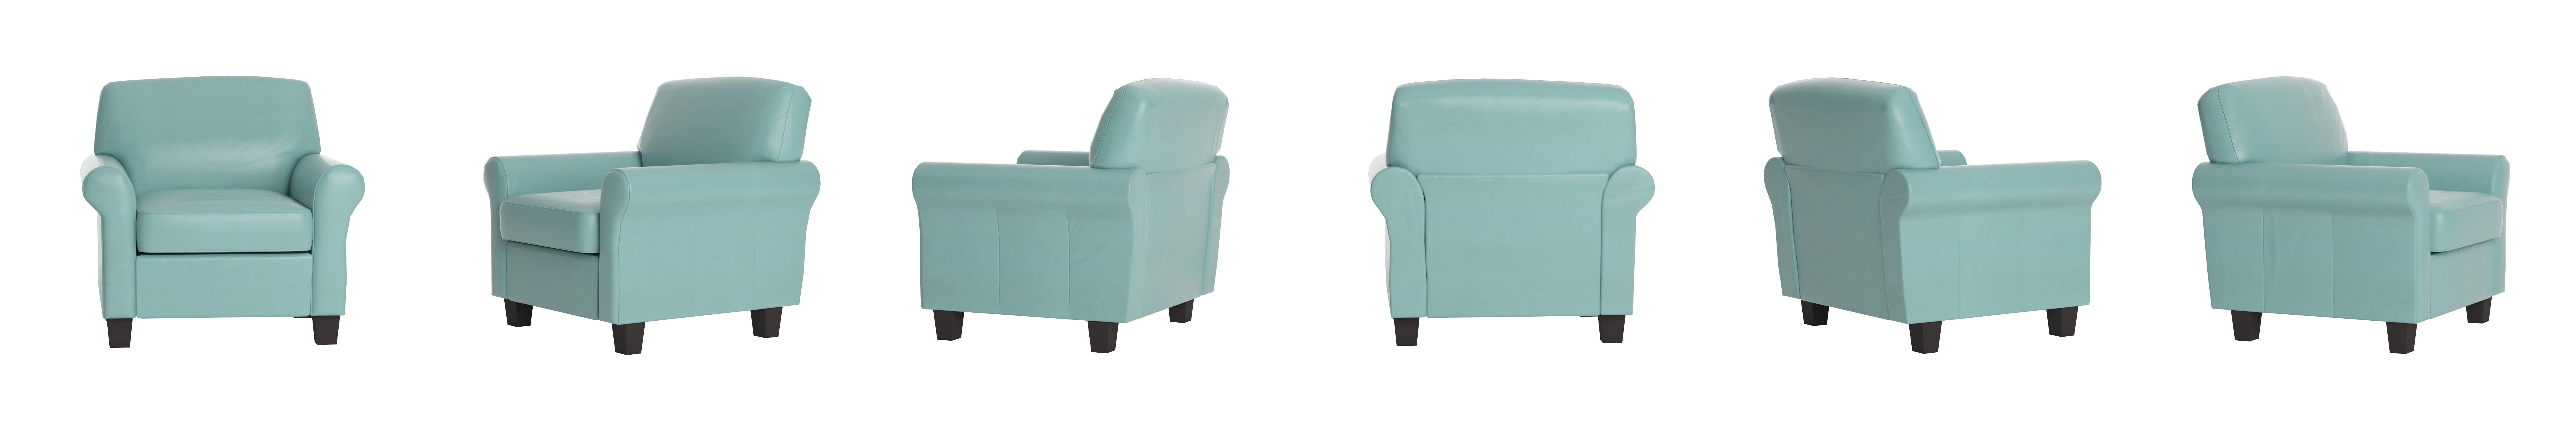 Amazon Best Selling Modern Club Chair Teal Blue Kitchen